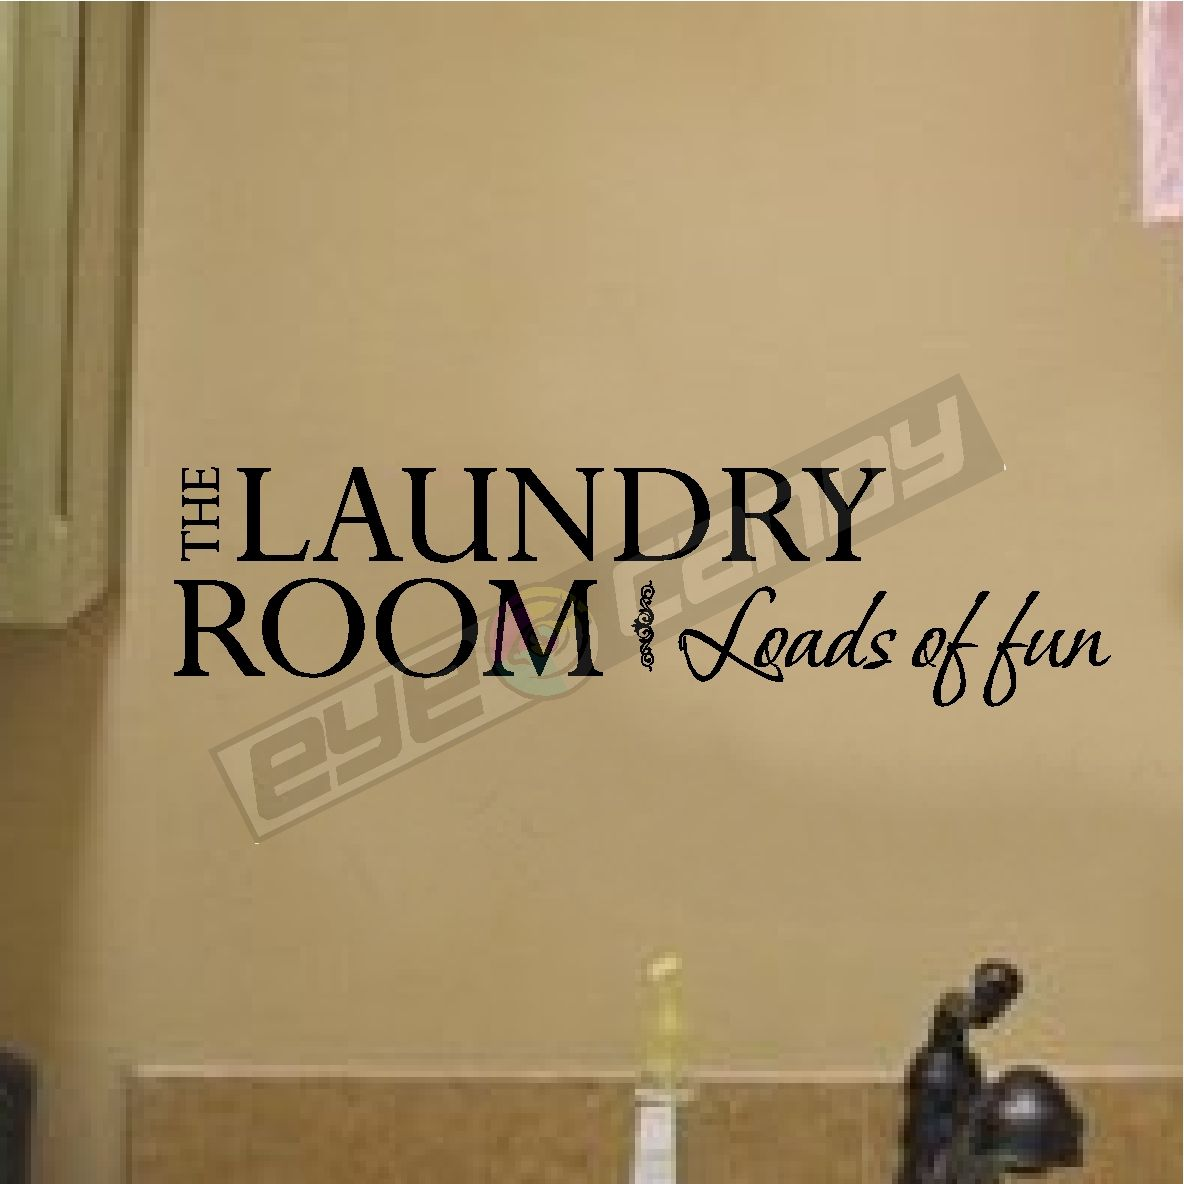 laundry room wall words | For the Home | Pinterest | Wall words ...